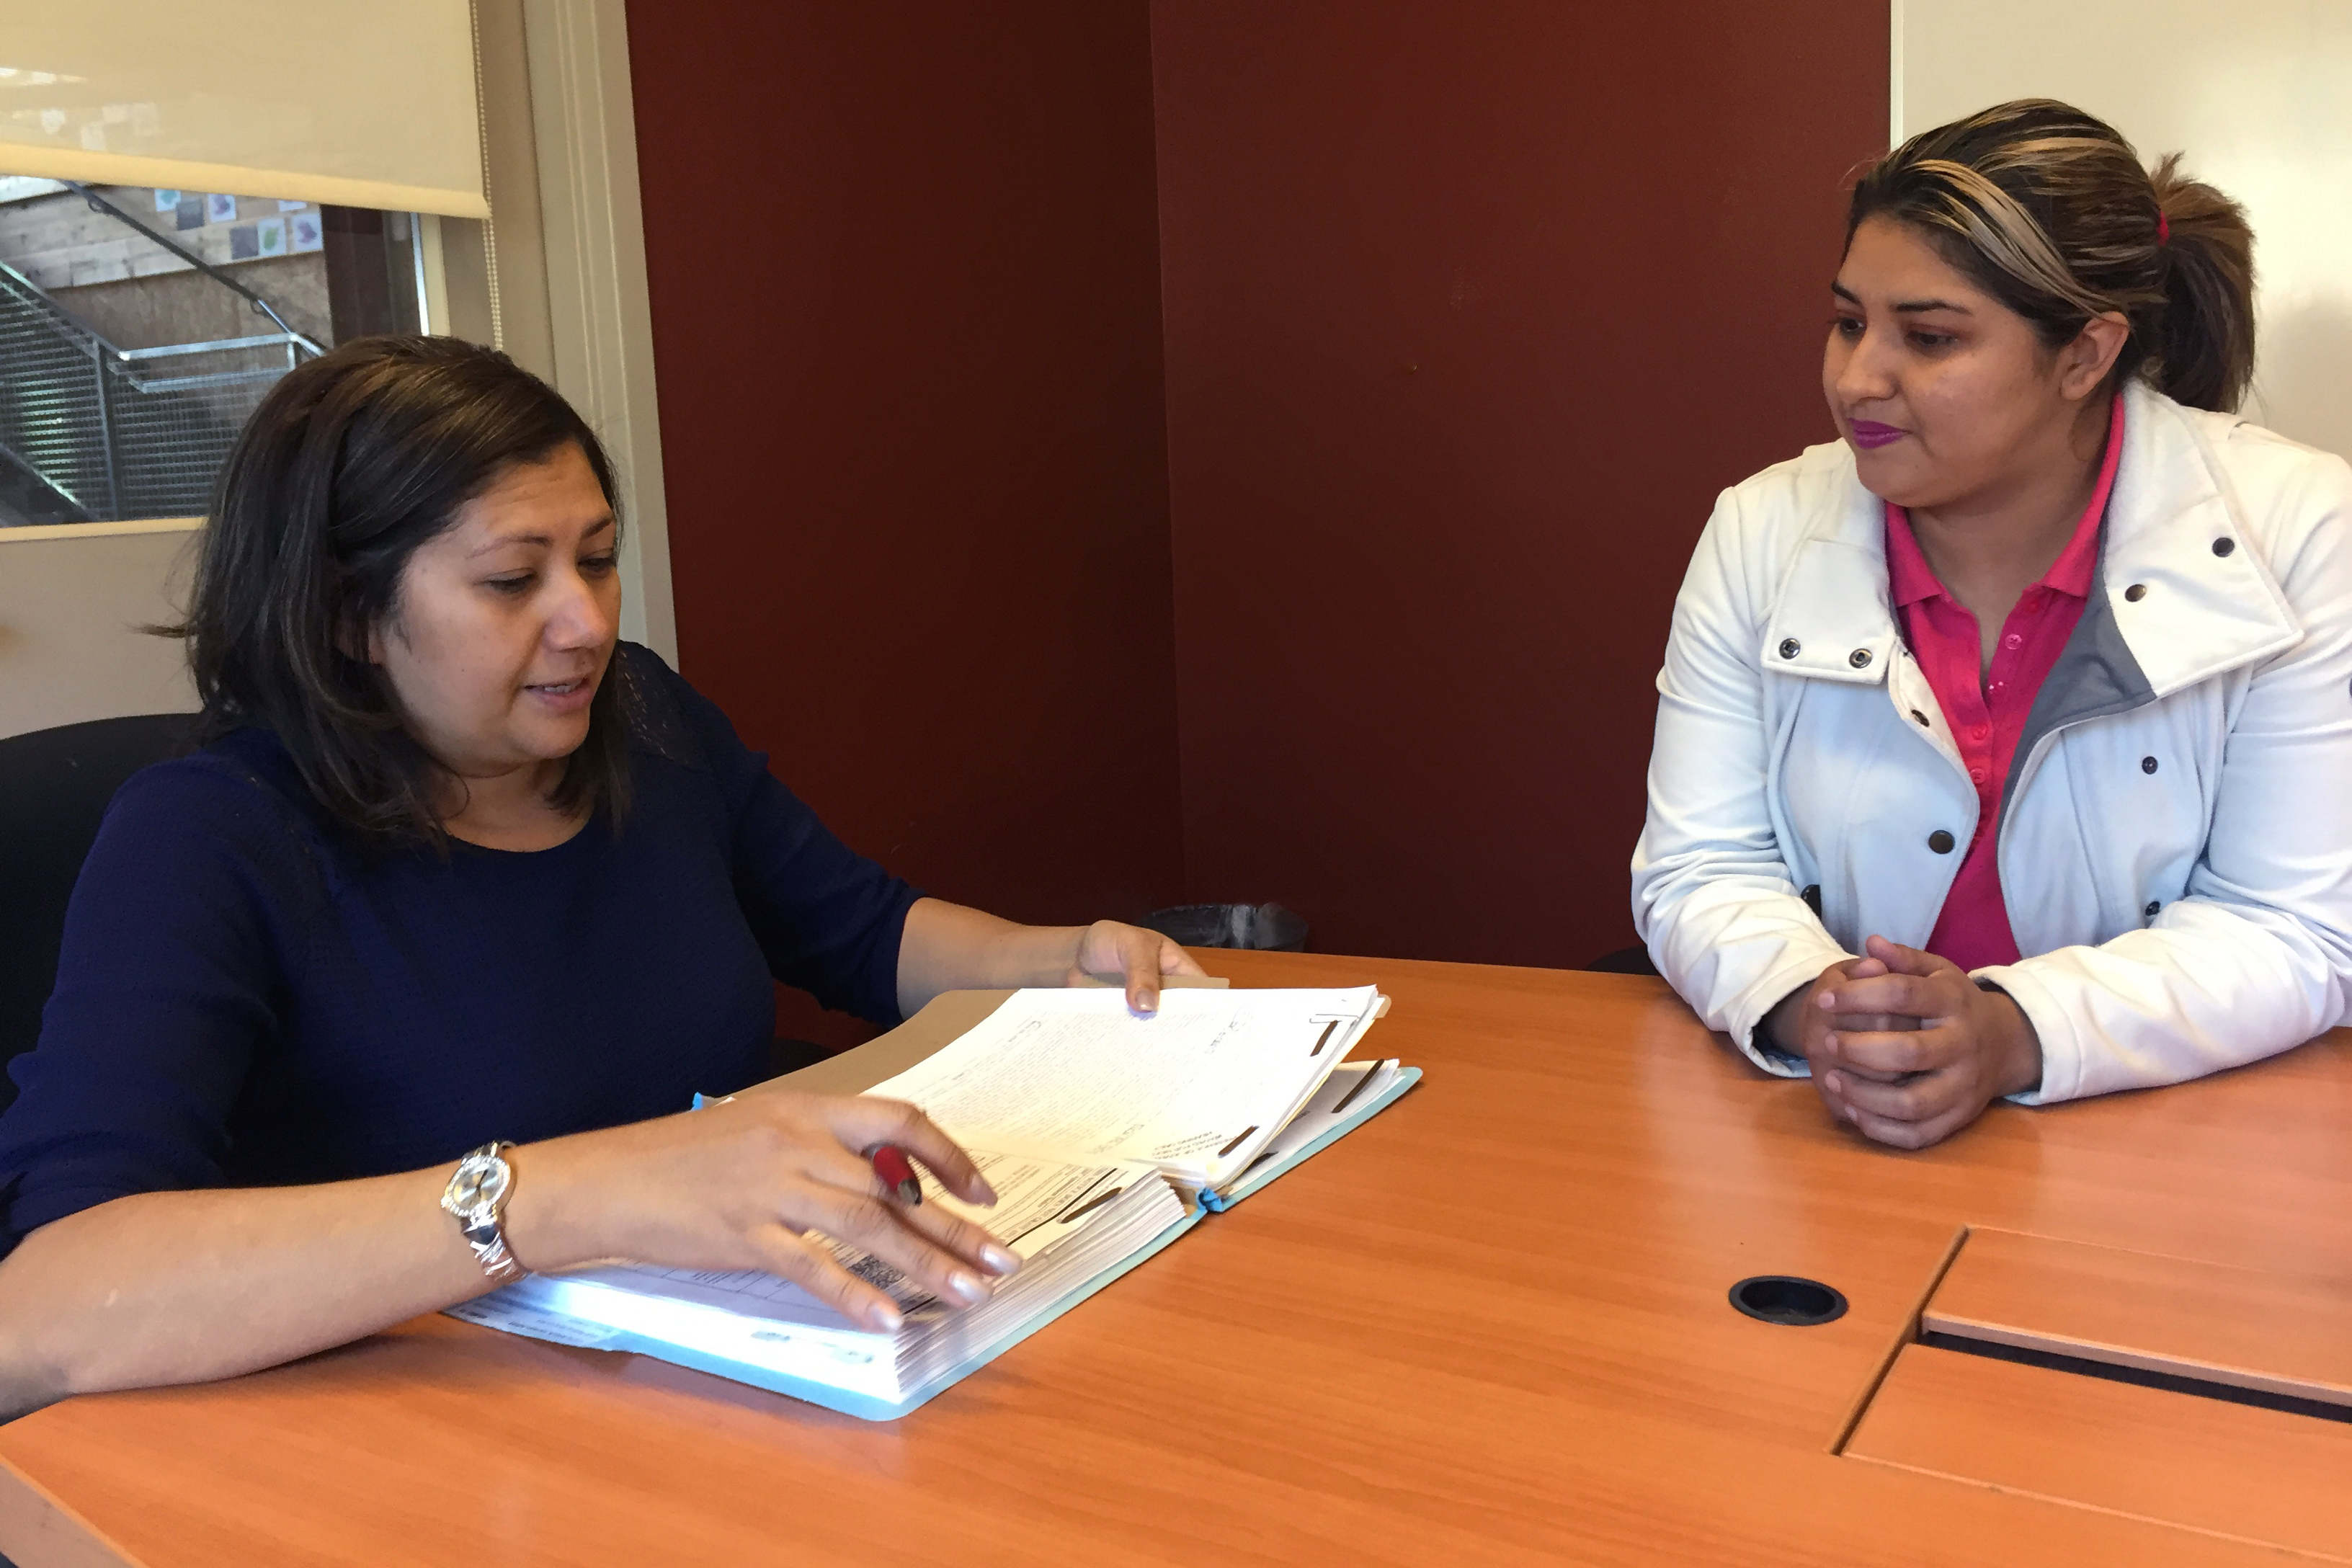 <p>Carmen Ortiz (right) discusses her asylum case with her lawyer, Sulma Mendoza (left), at the Justice and Mercy Legal Aid Center in Denver on Nov. 5, 2018. The center receiveda$95,500 grant from the Denver Immigrant Legal Services Fund to represent people in deportation proceedings. The goal of the fund is toexpand the pro bono capacity in Denver to handle everything from removal cases to naturalization paperwork.</p>  <p></p>